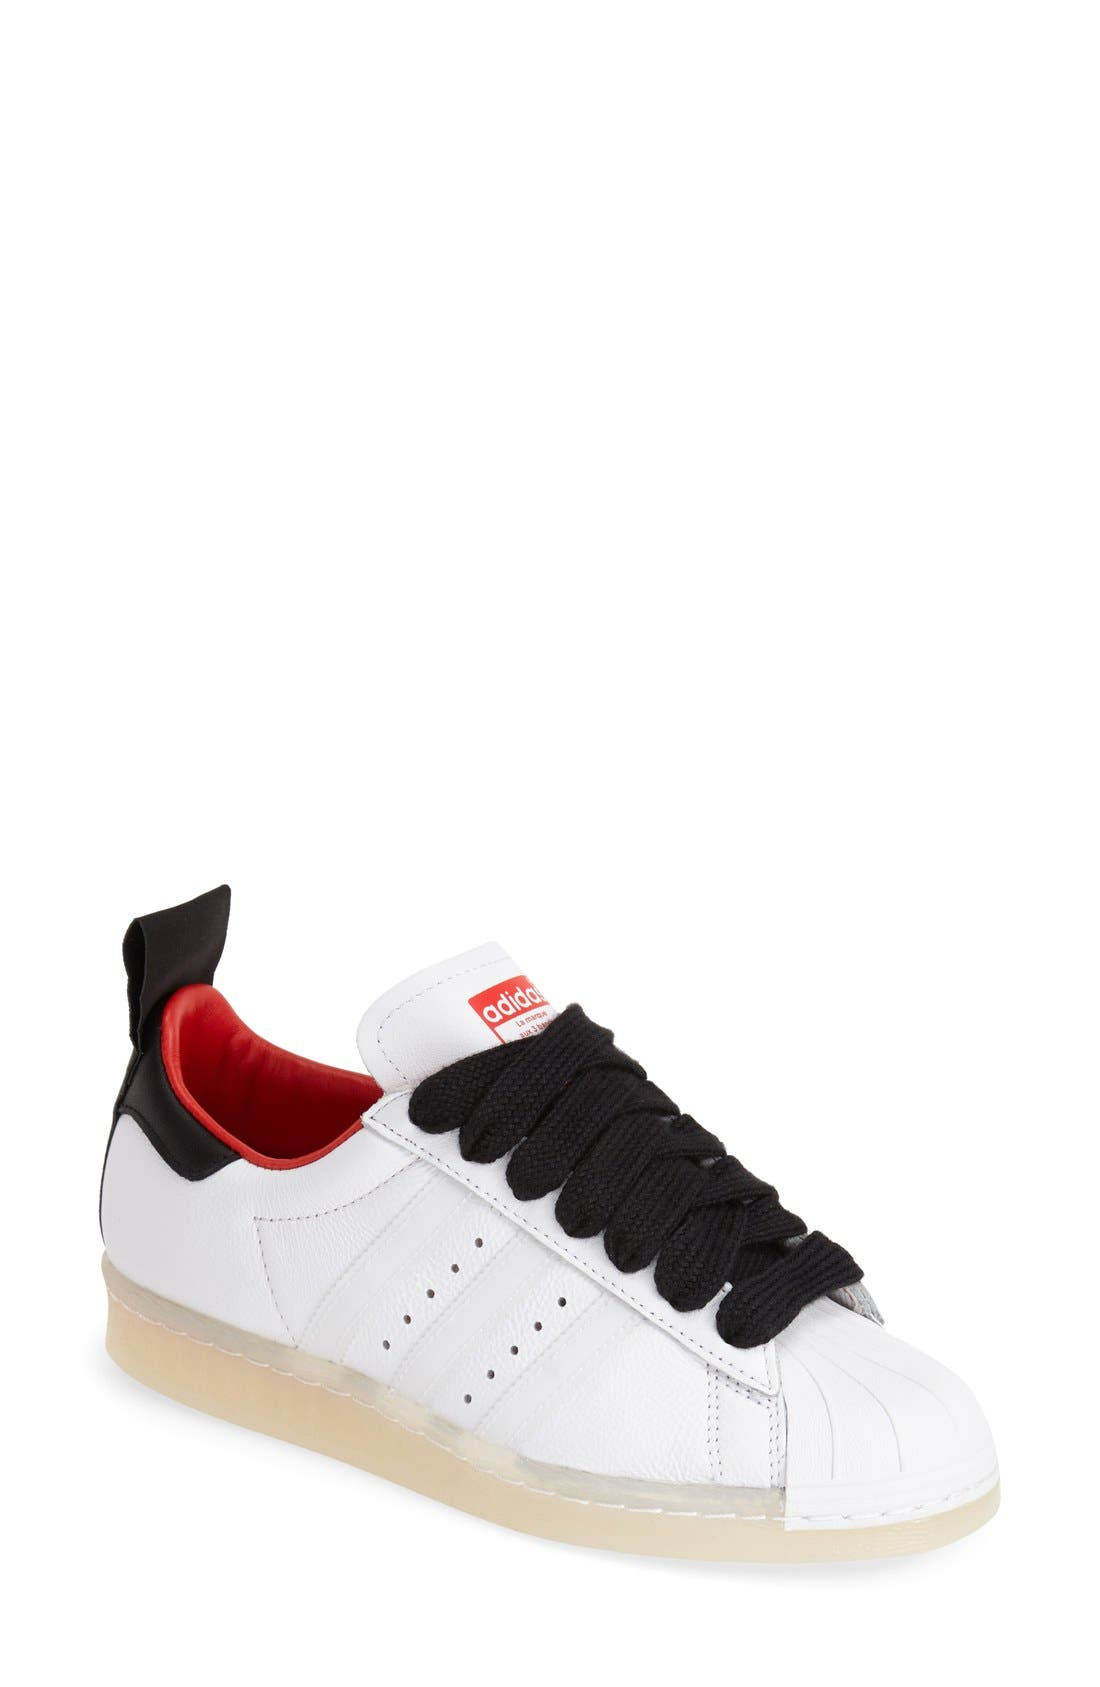 Main Image - Topshop for adidas Originals 'Superstar 80s' Leather Sneaker (Women)